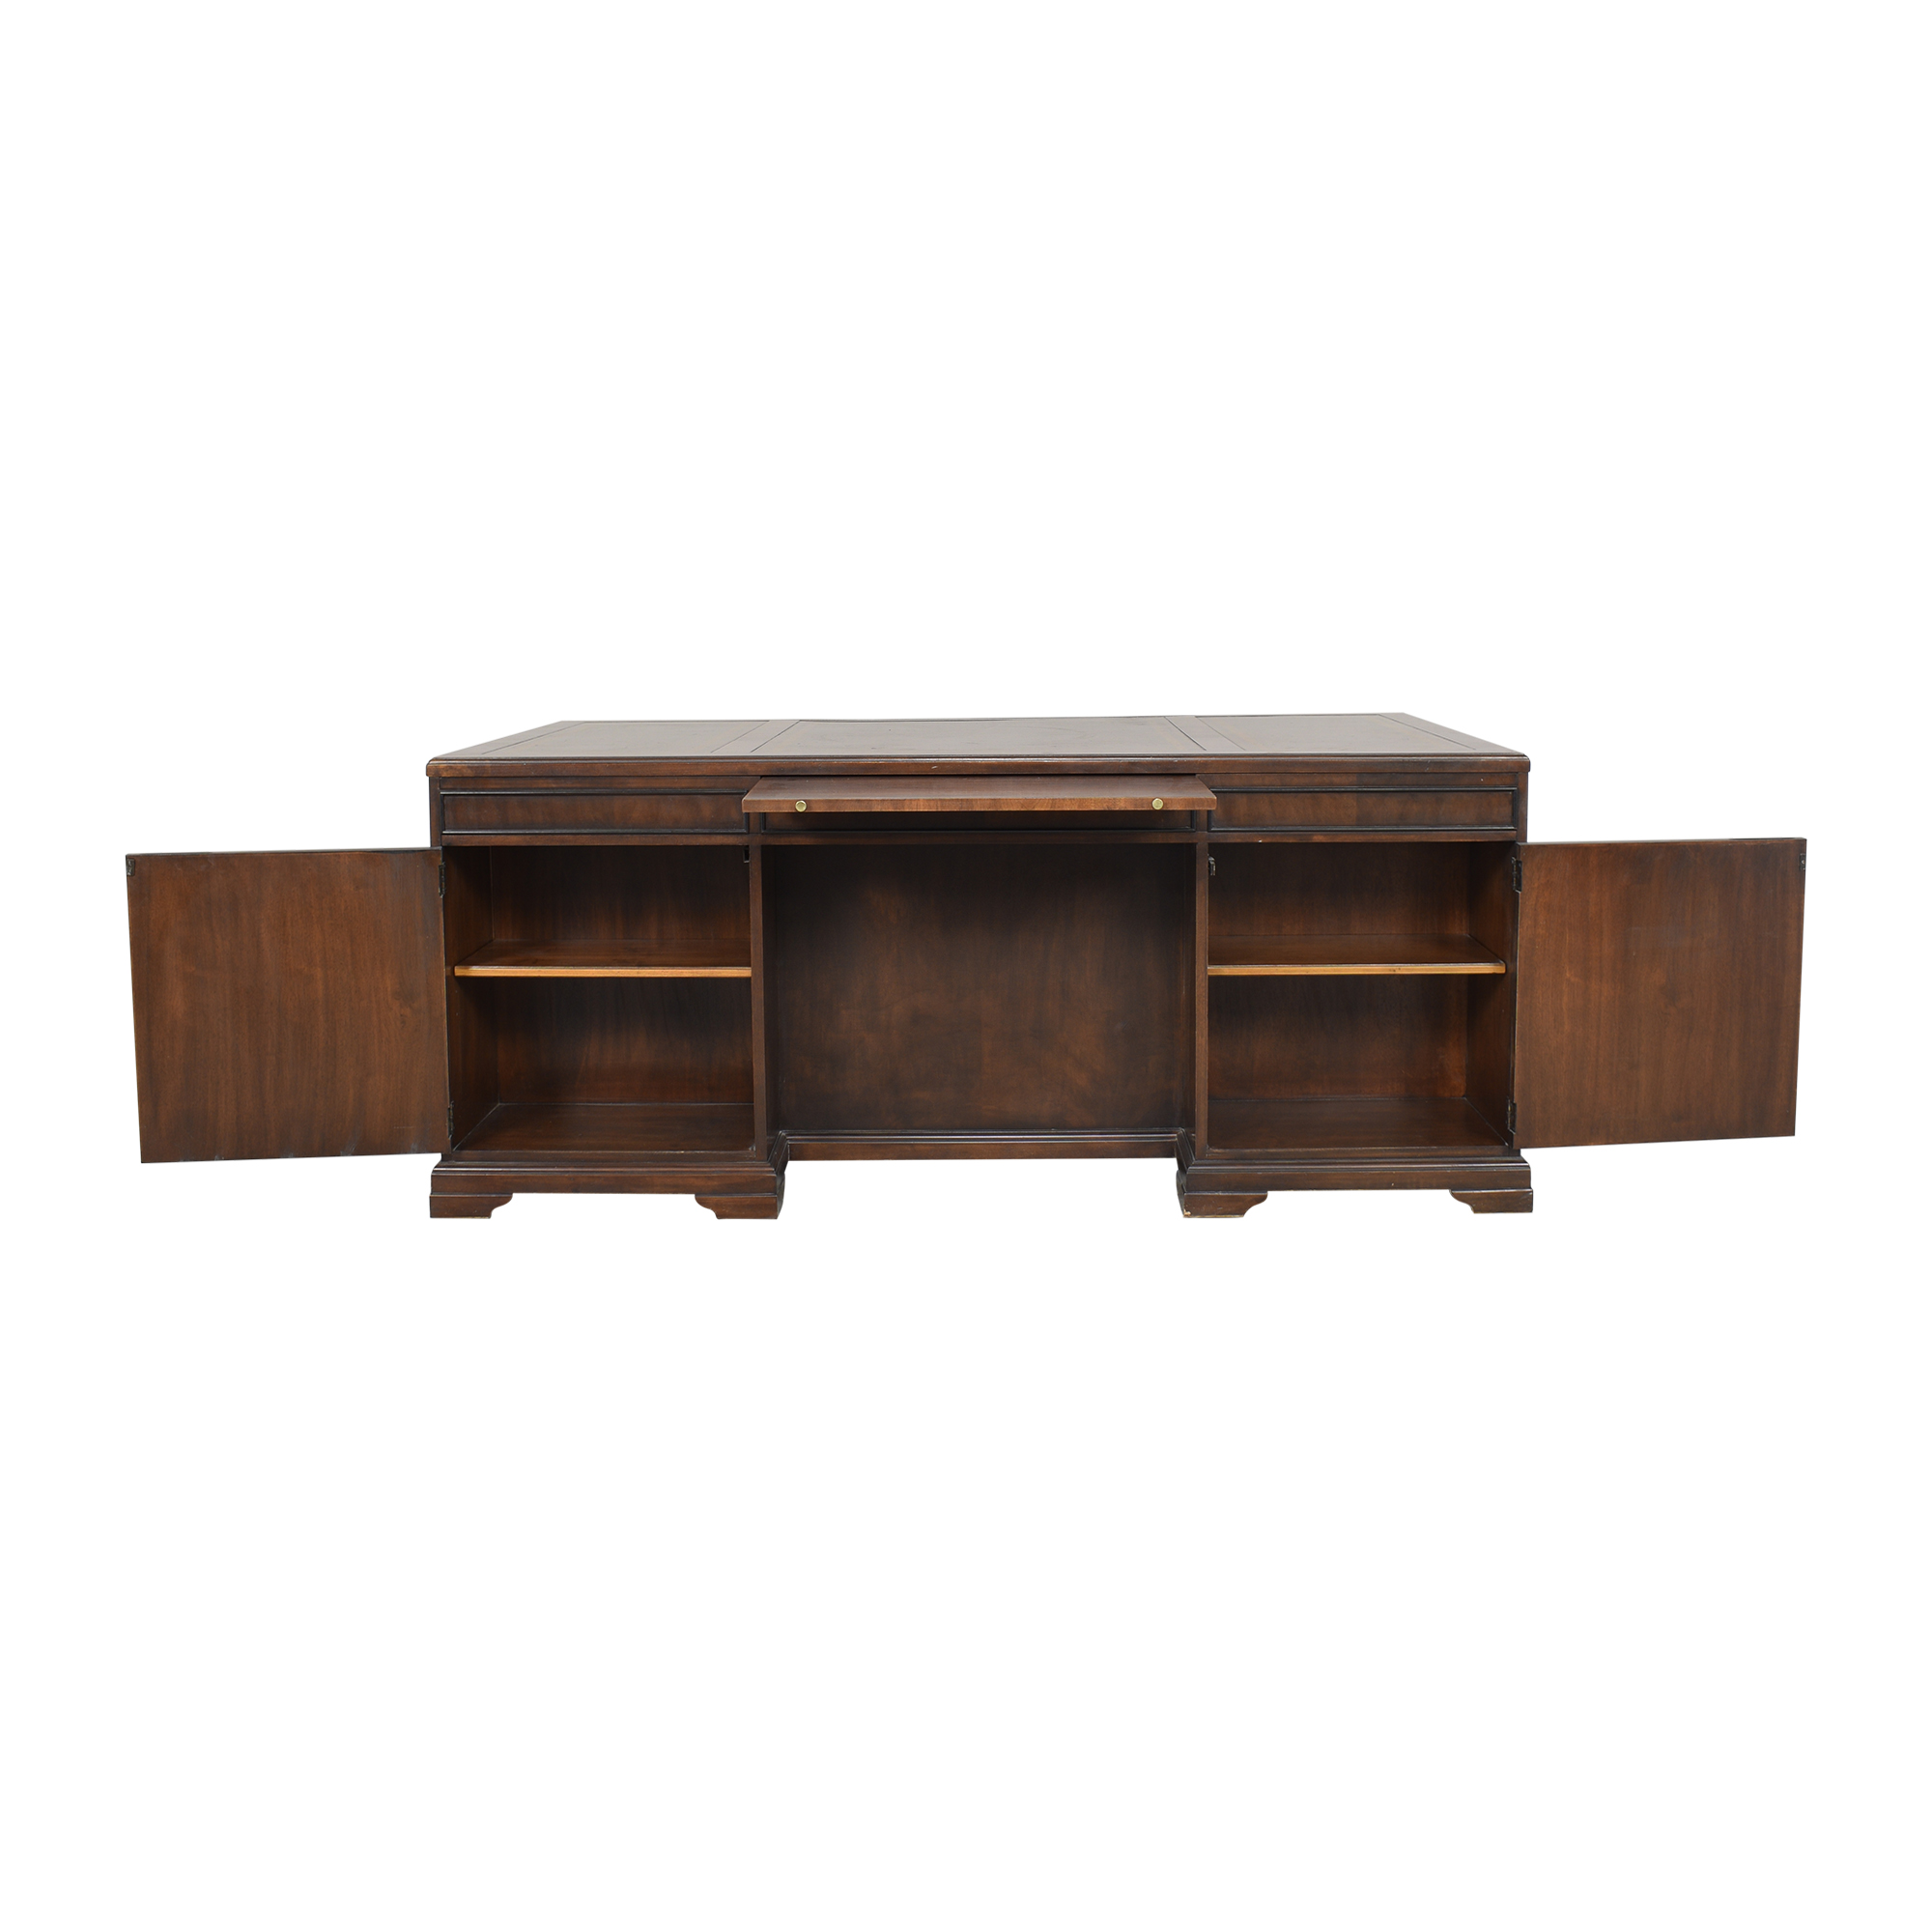 Executive Desk with Drawers and Cabinets used